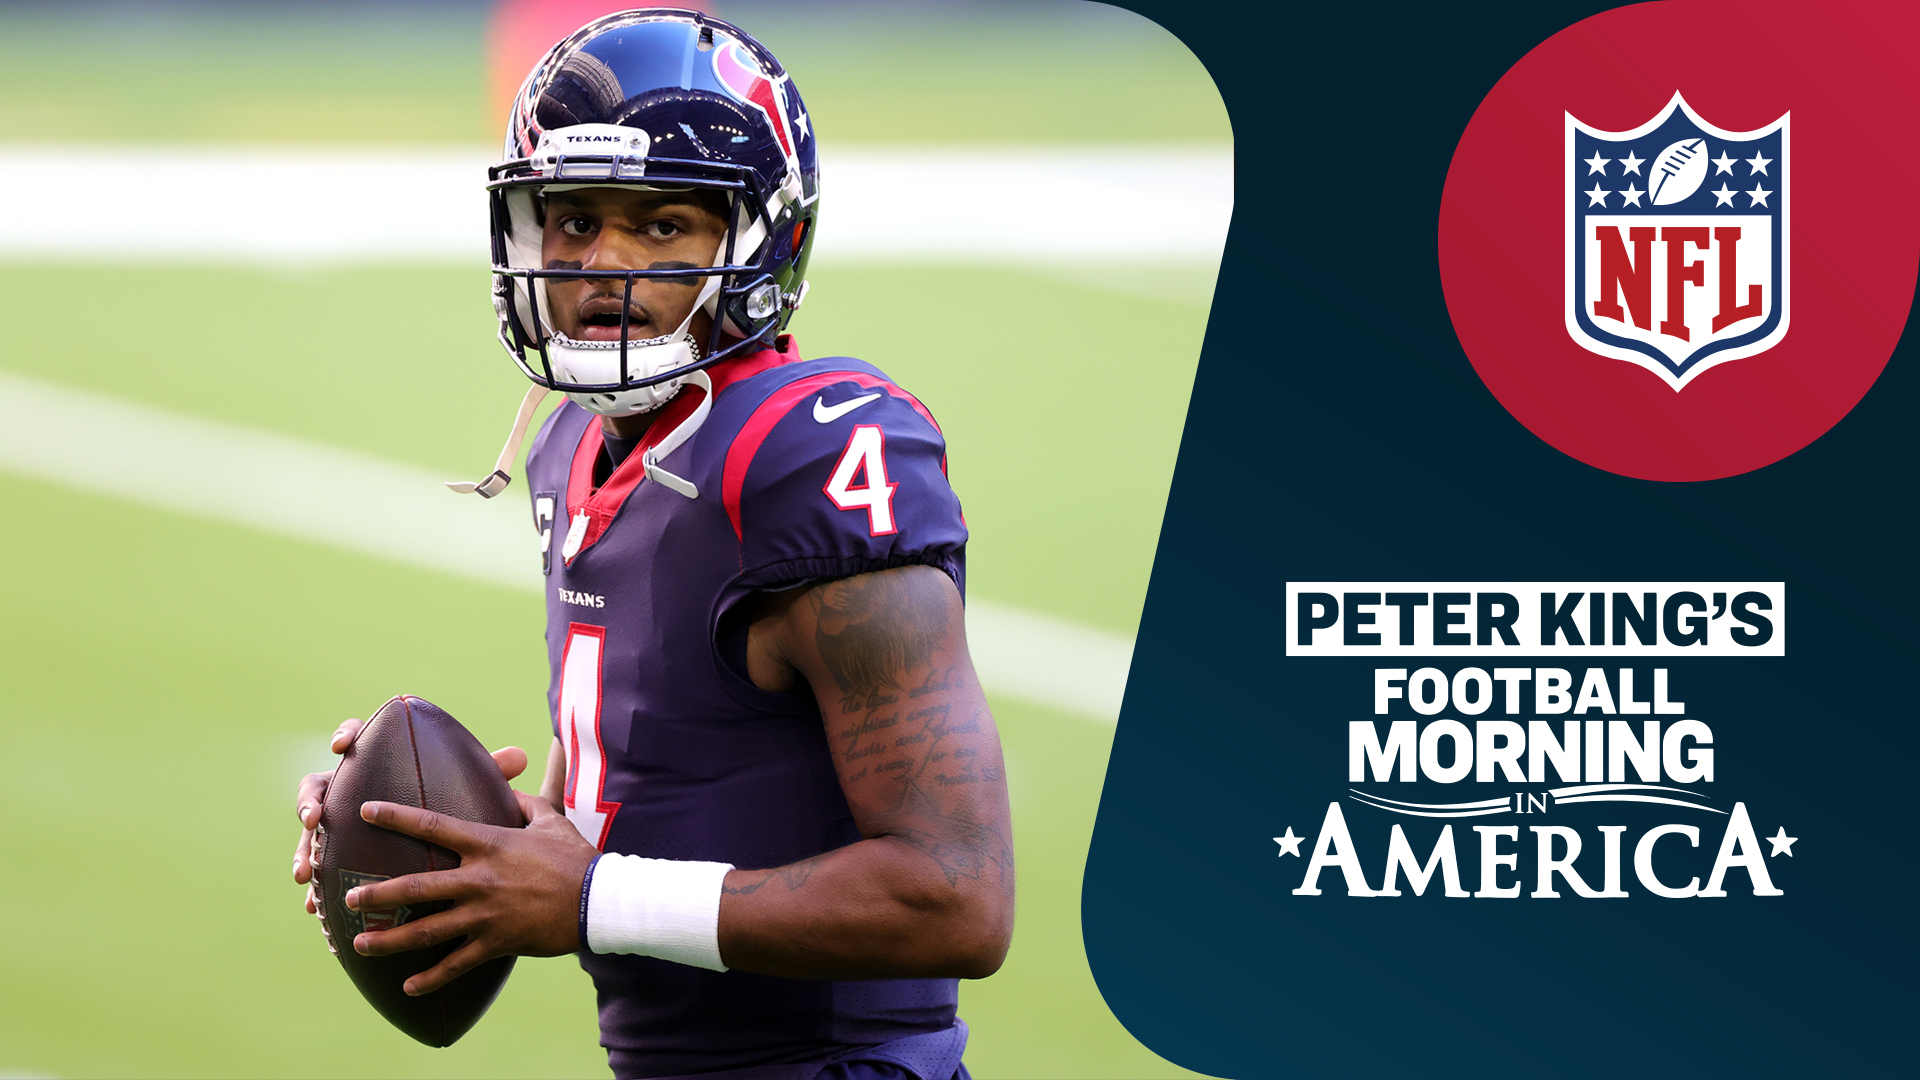 Peter King's five mock trade proposals for Deshaun Watson